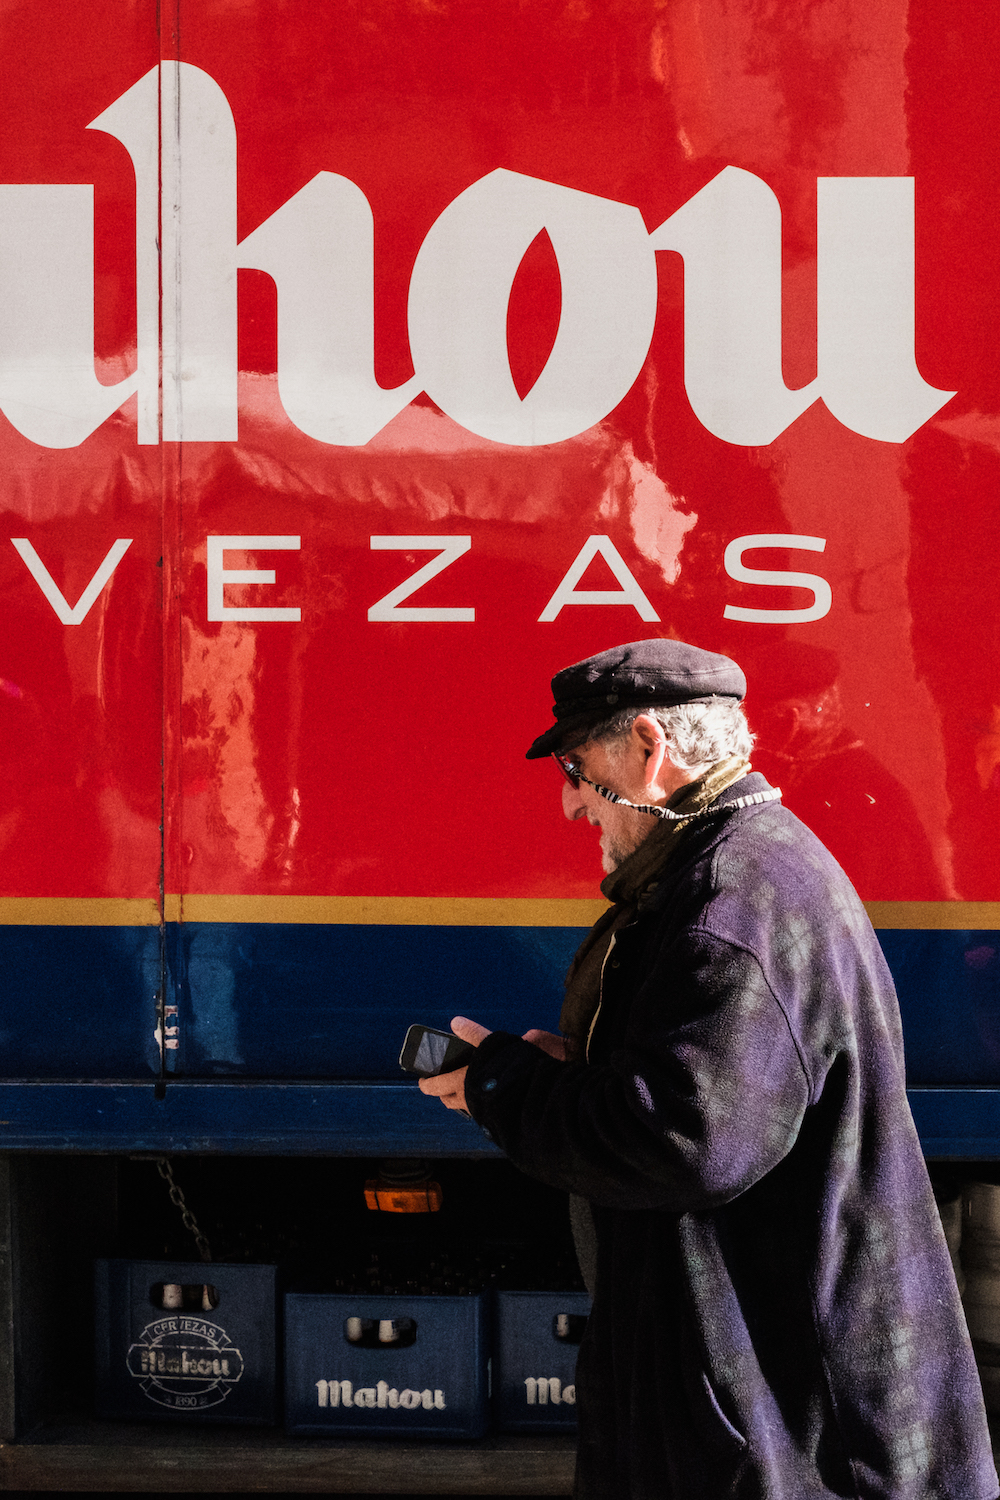 Mahou cerveza/beer lorry, Madrid Street Photography Essay - by Ben Holbrook DriftwoodJournals.com-9032